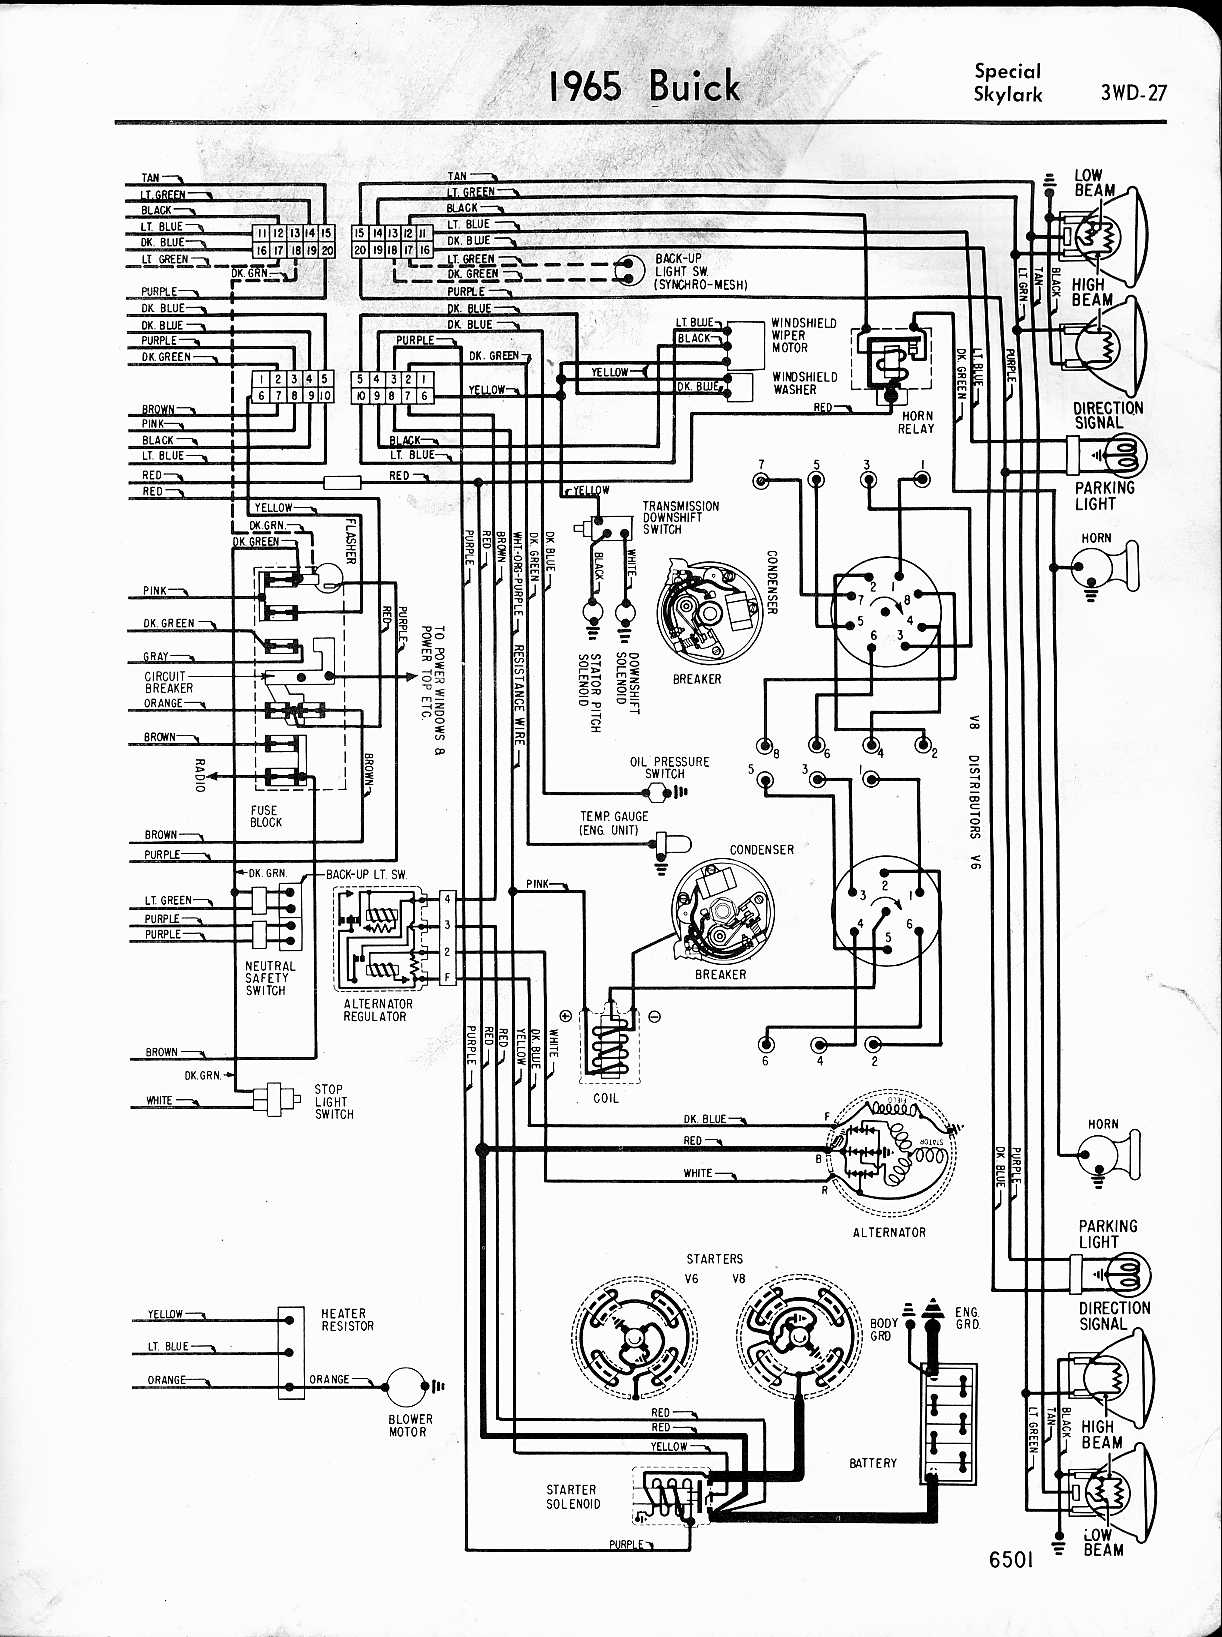 1970 Buick Skylark Fuse Box Diagram Reinvent Your Wiring 1993 Regal 1965 Schematic Rh Aikidorodez Com 2002 Century 2000 Lesabre Location